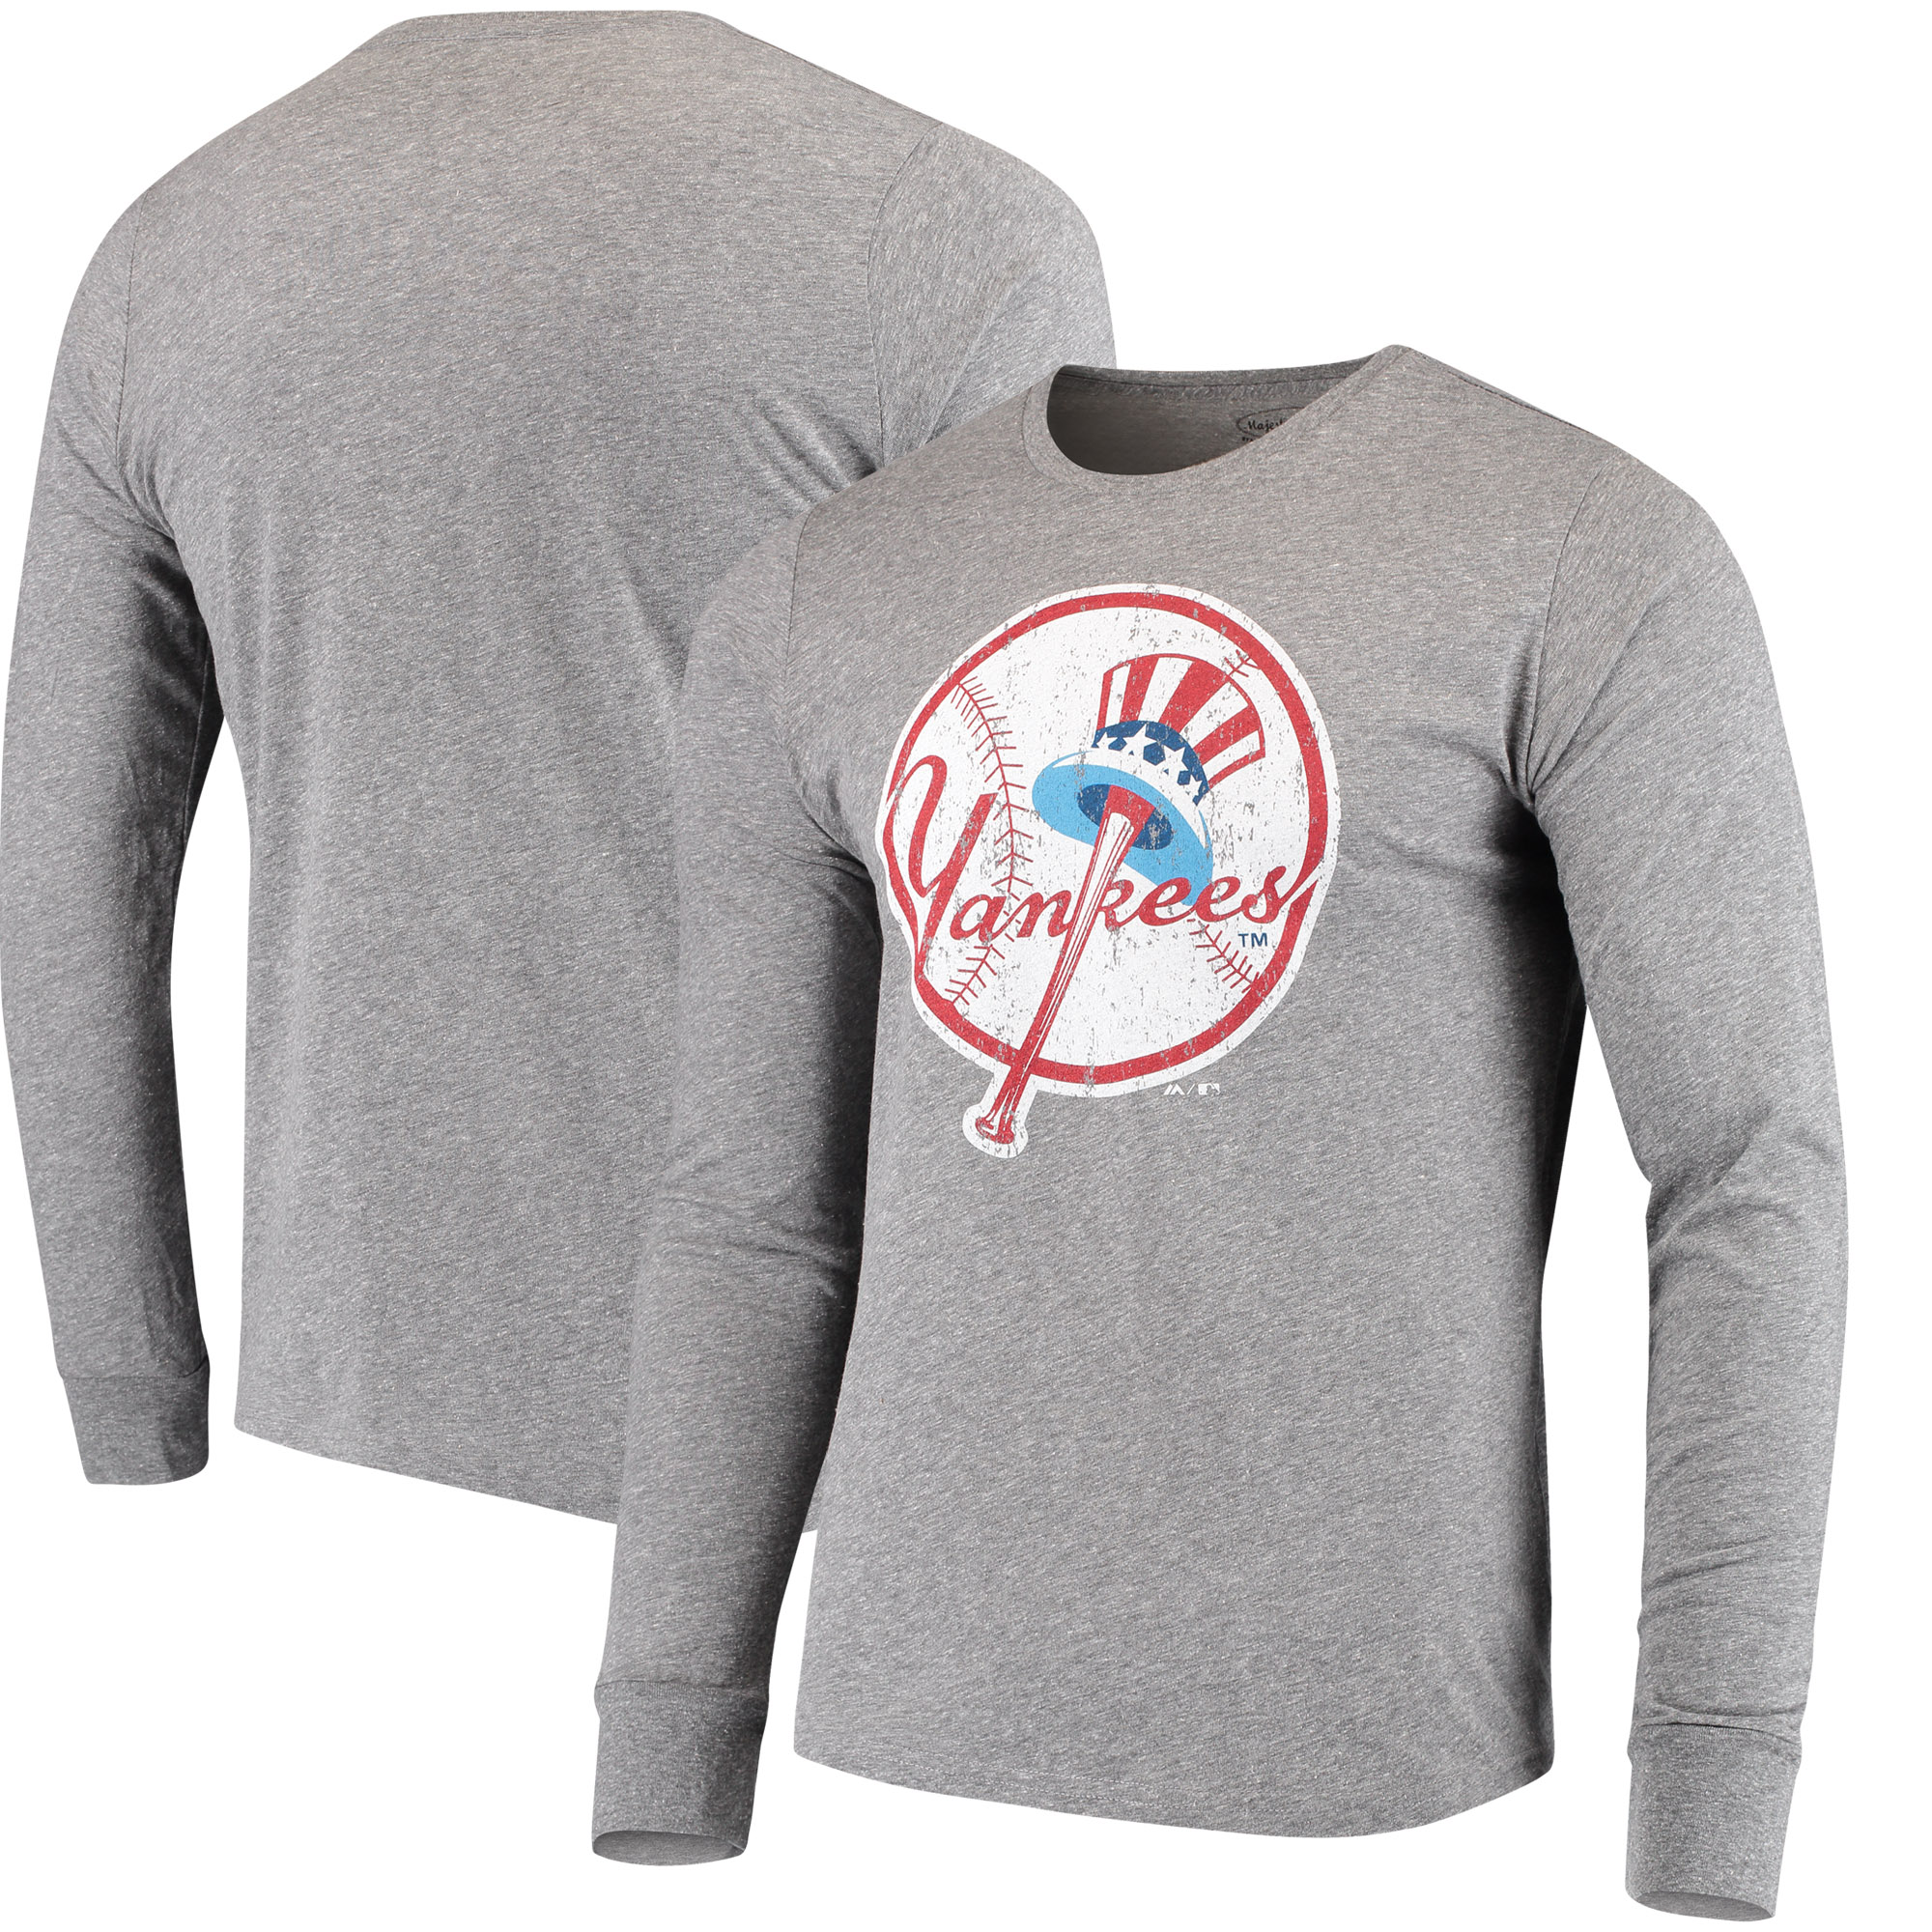 New York Yankees Majestic Threads Cooperstown Collection Tri-Blend Long Sleeve T-Shirt - Heathered Gray